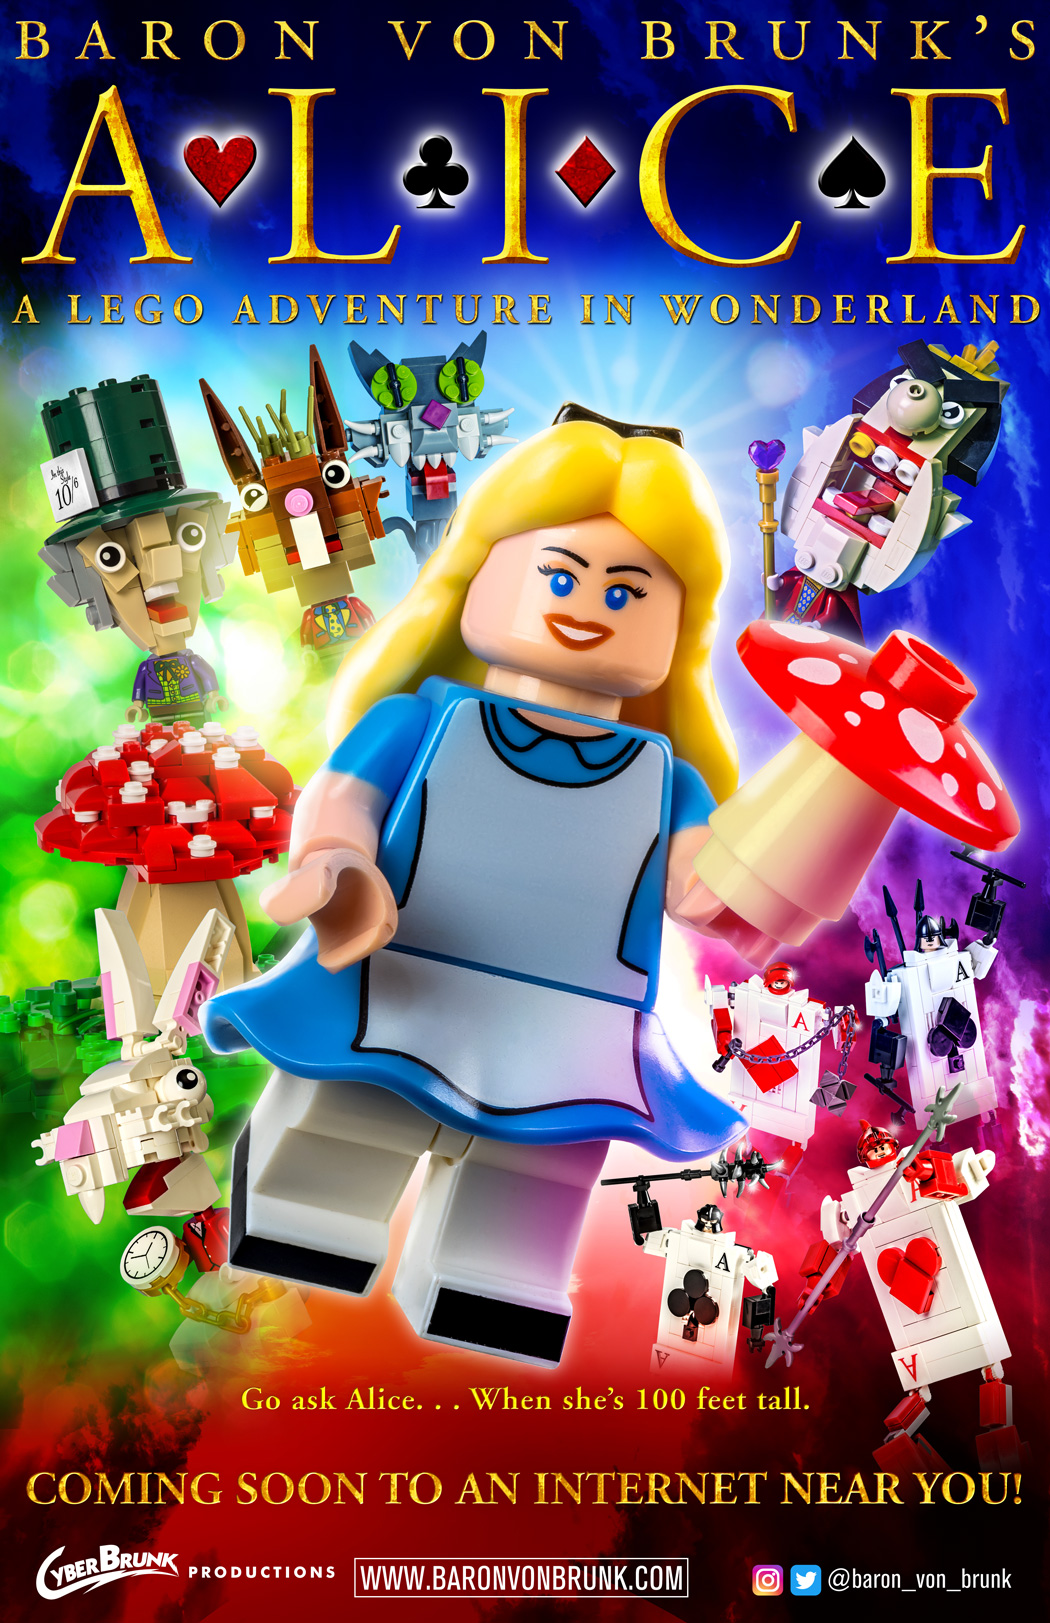 Baron von Brunk's Website! » LEGO Alice Poster